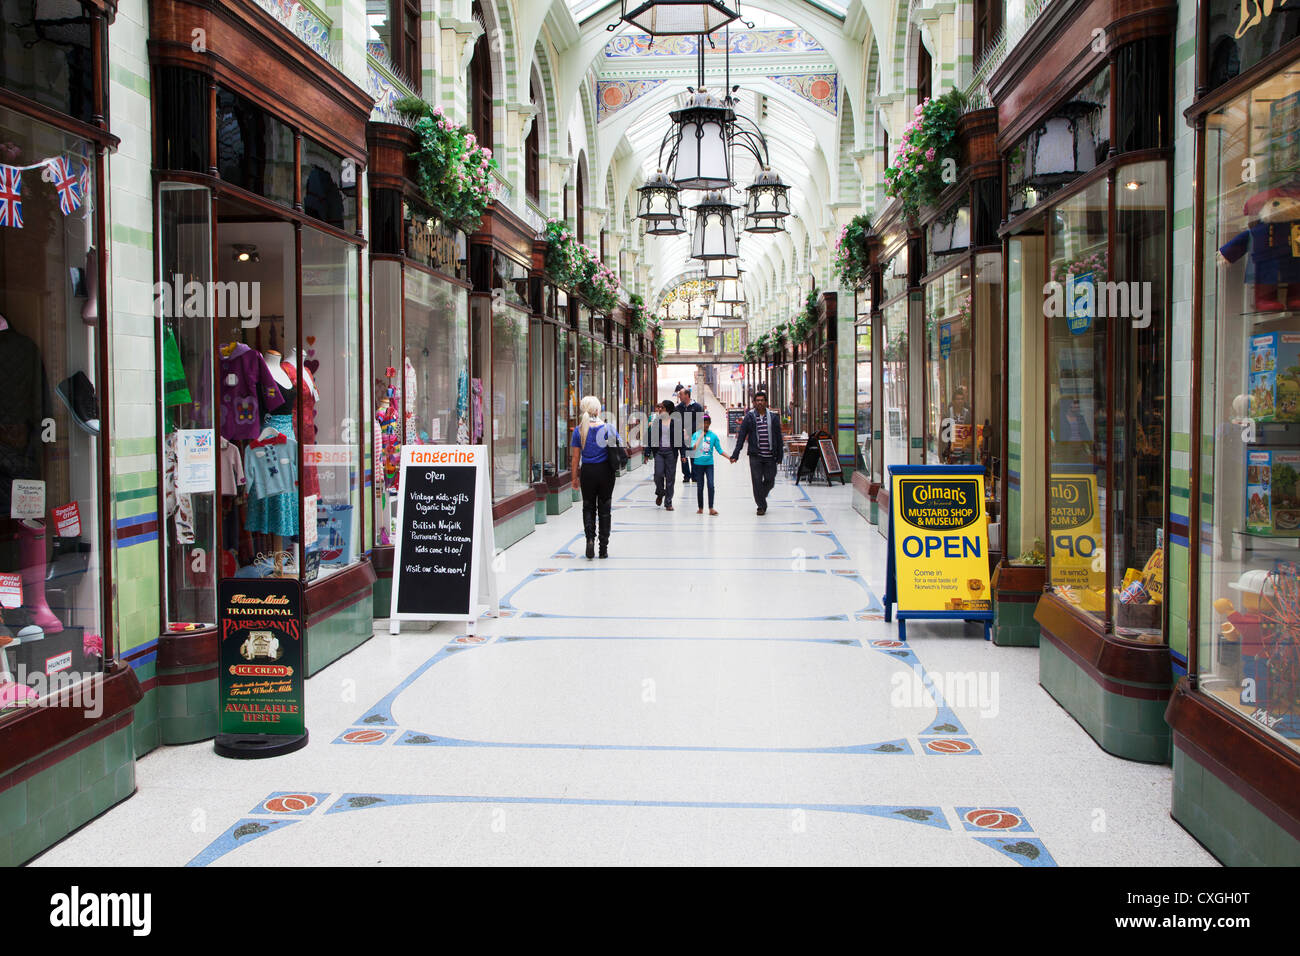 Colmans Mustard Shop and Museum in Royal Arcade Norwich Norfolk England - Stock Image